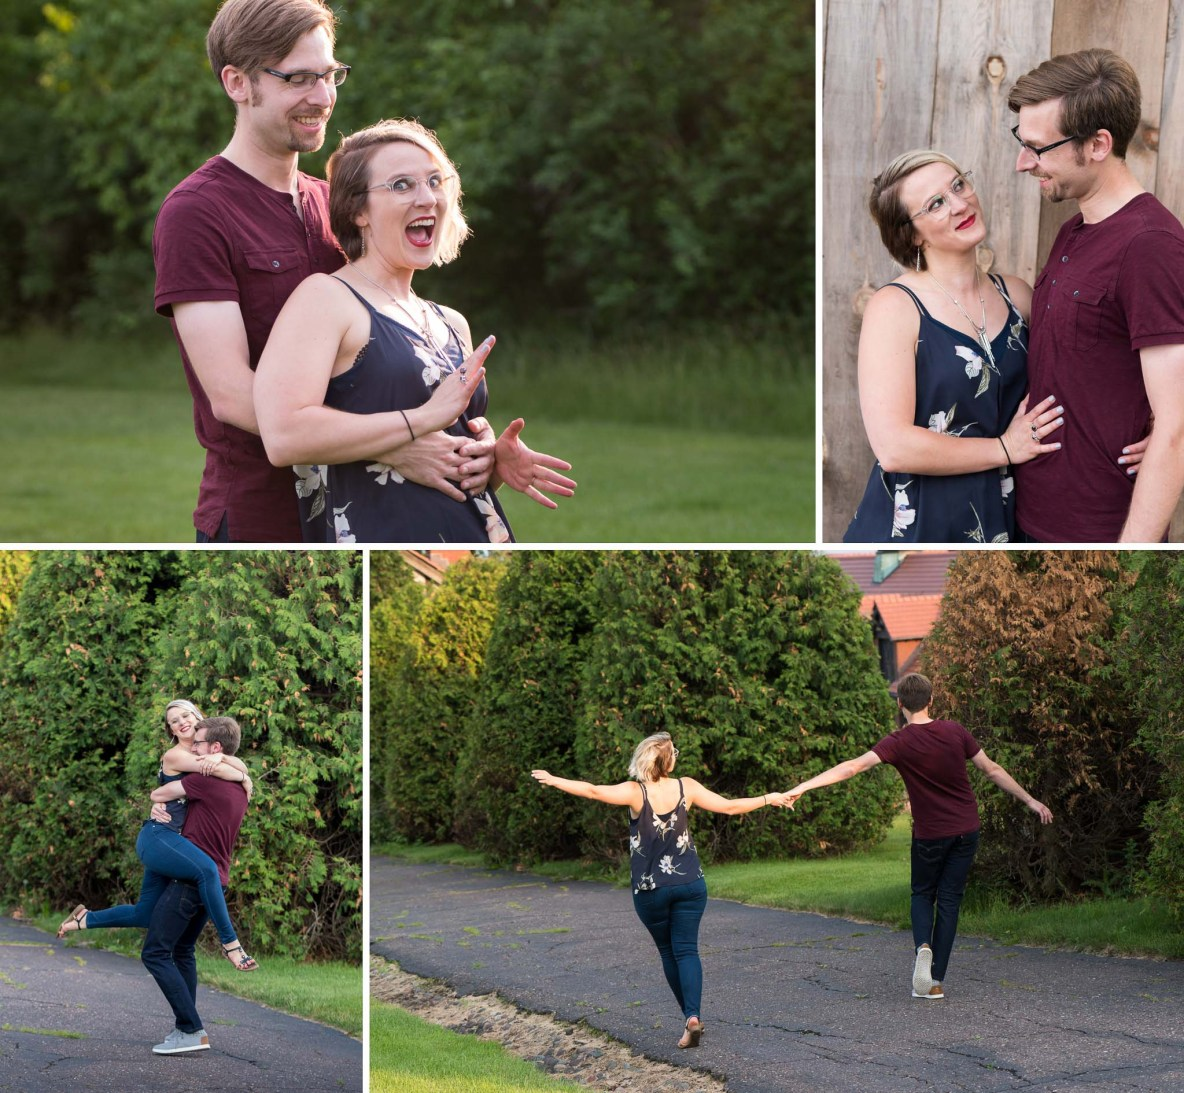 Photos of the engaged couple outside with green trees in background.